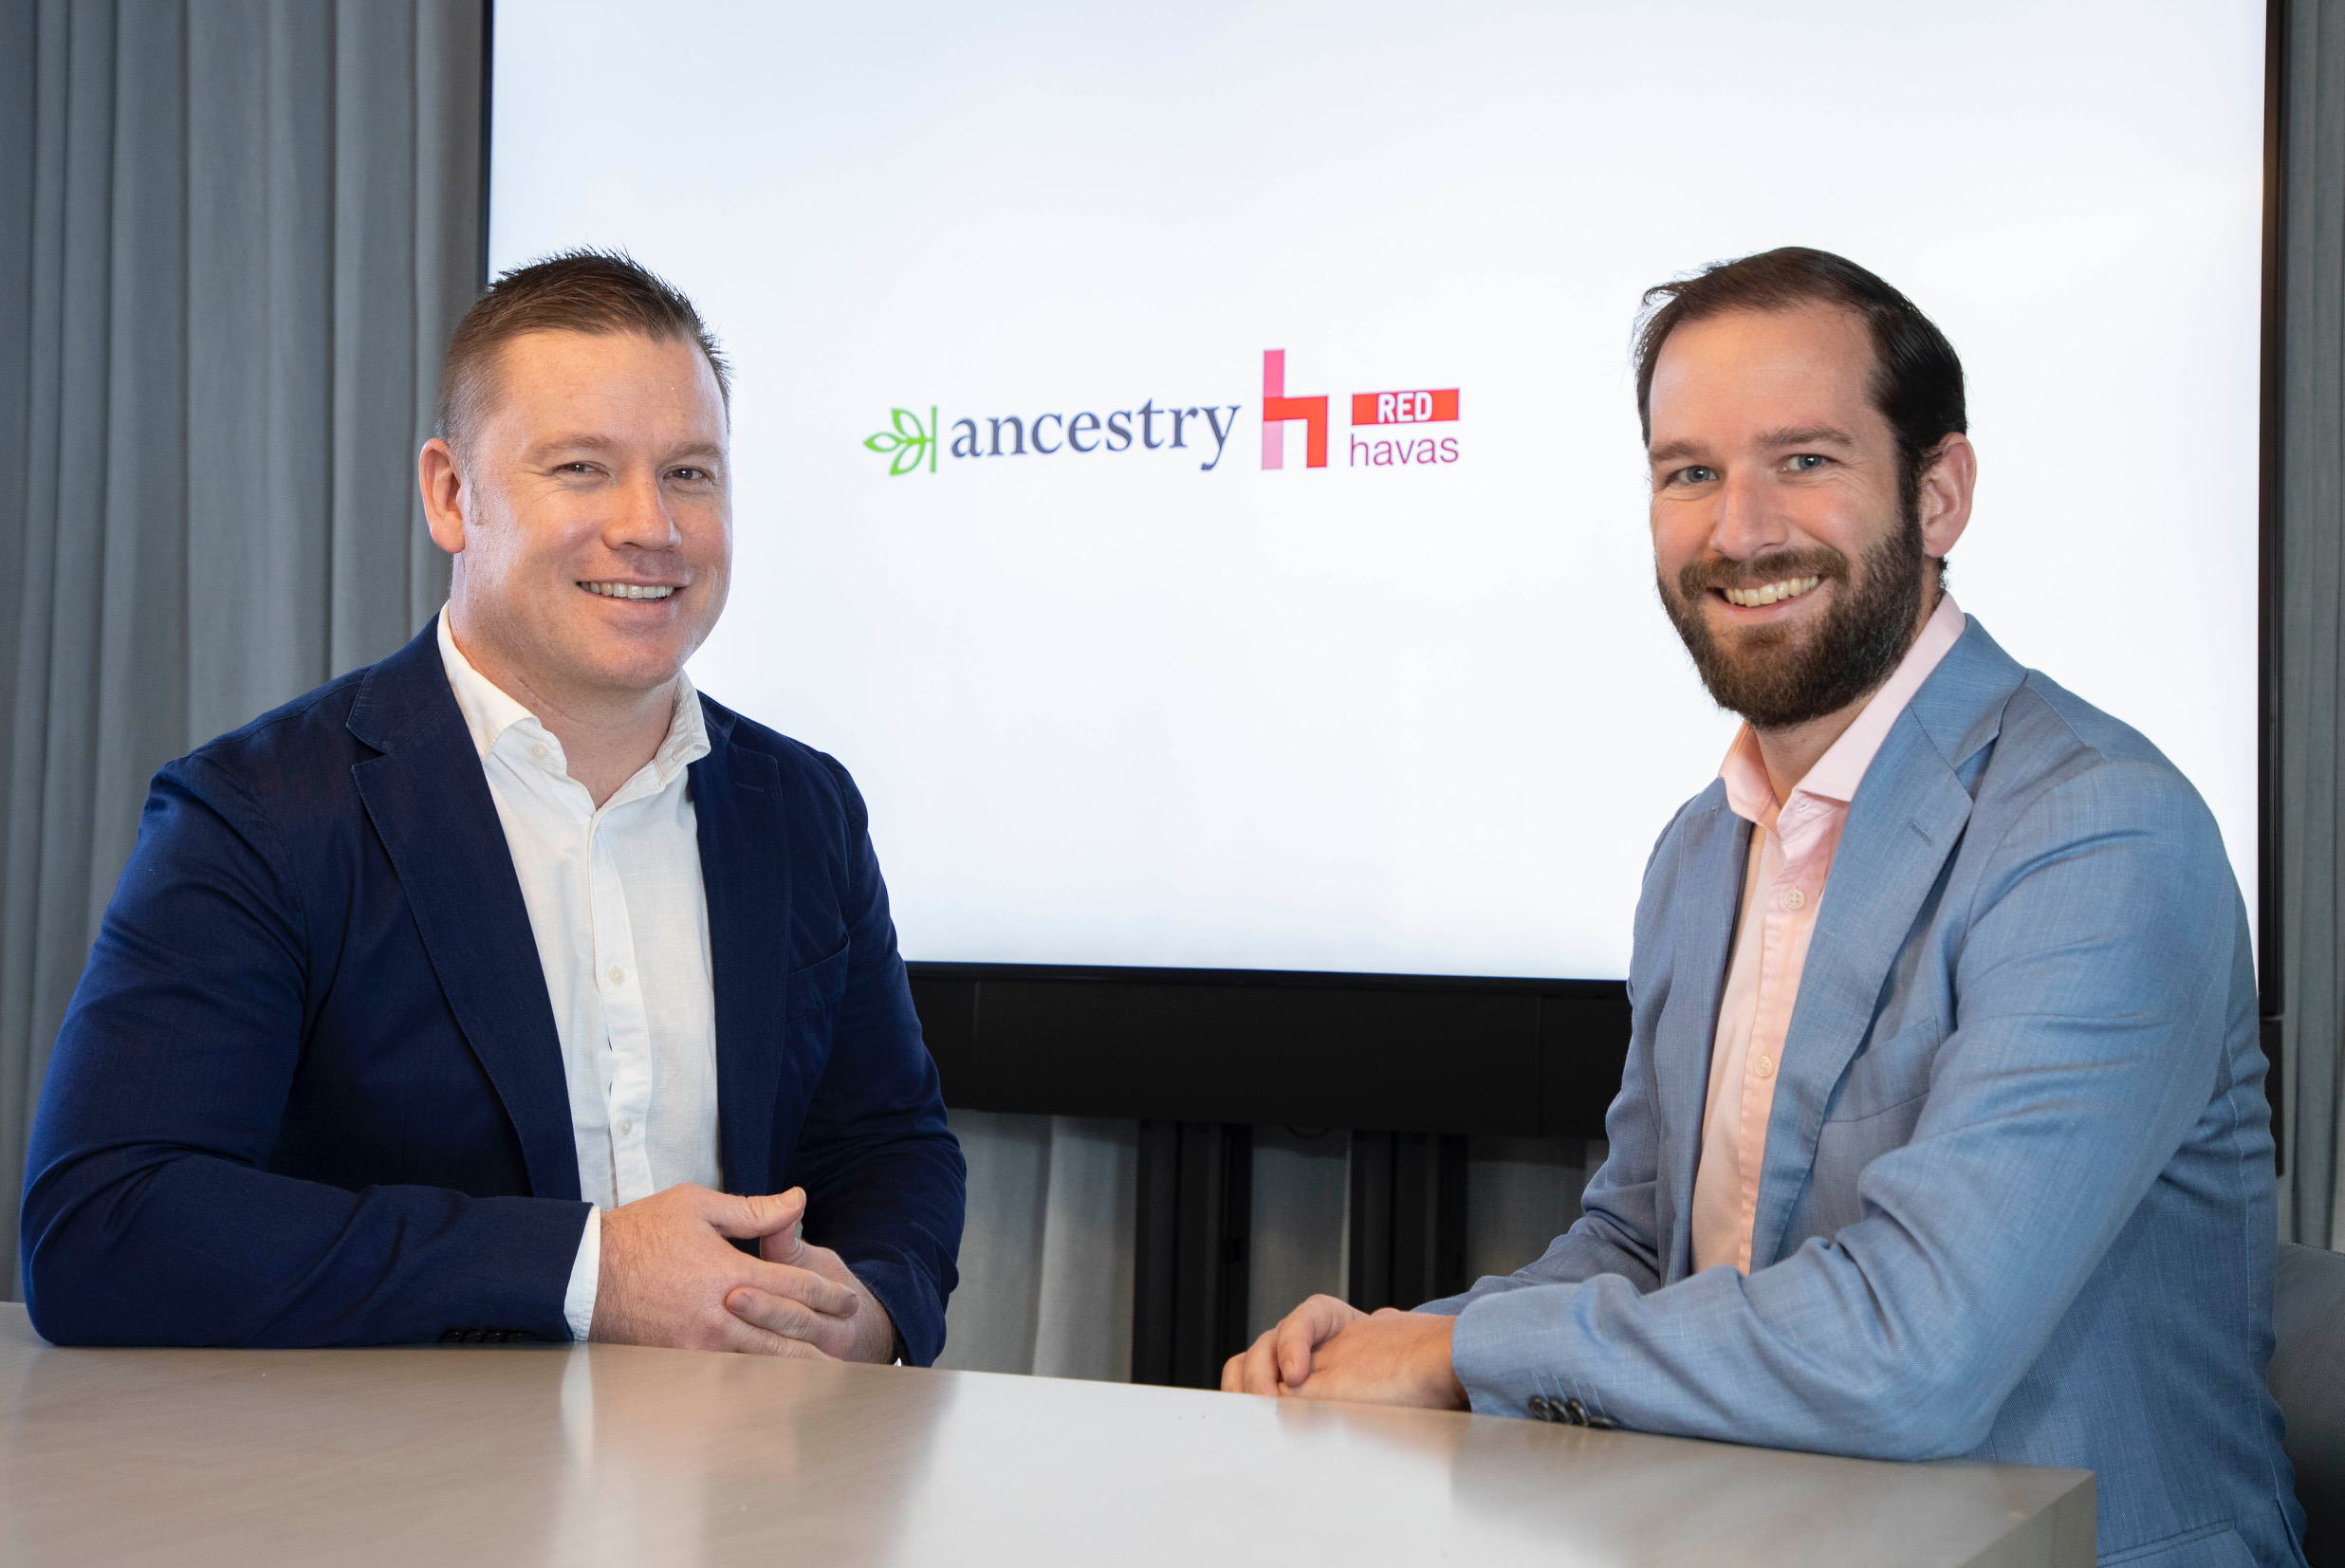 Ancestry appoints Red Havas to help build deeper connections with Australian consumers